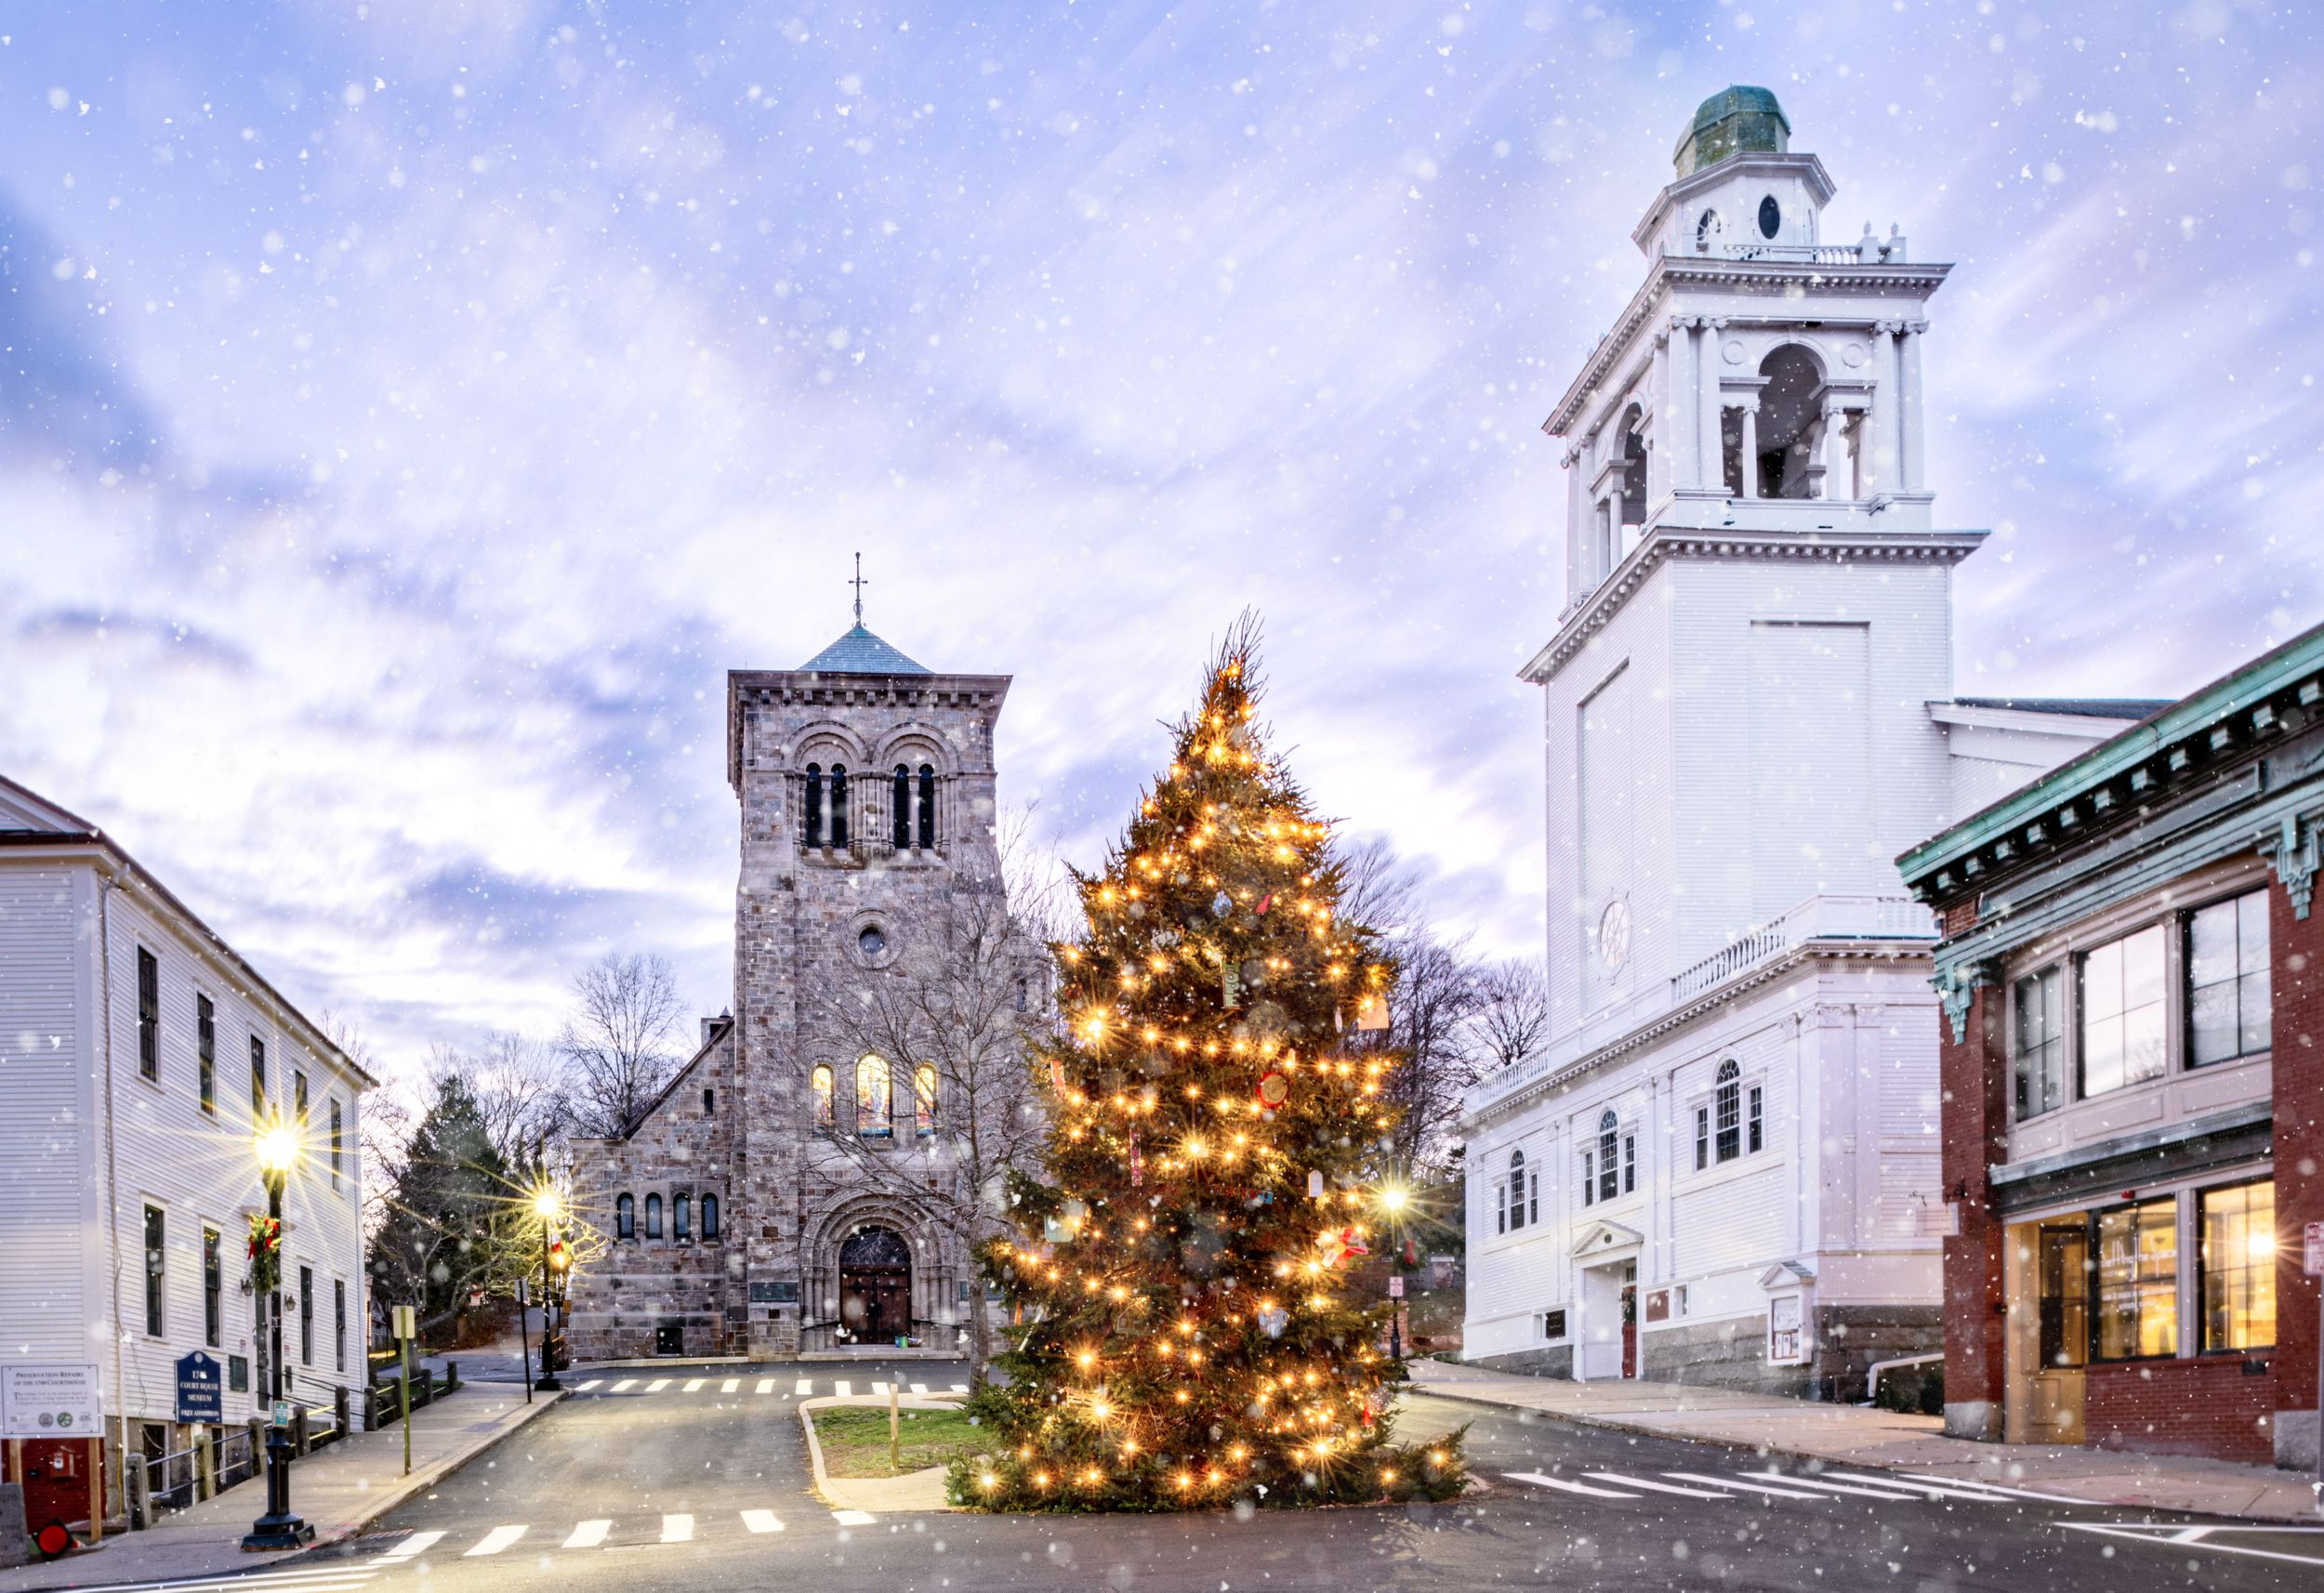 Town Square Holiday Tree in Plymouth, MA by heidi harting photography